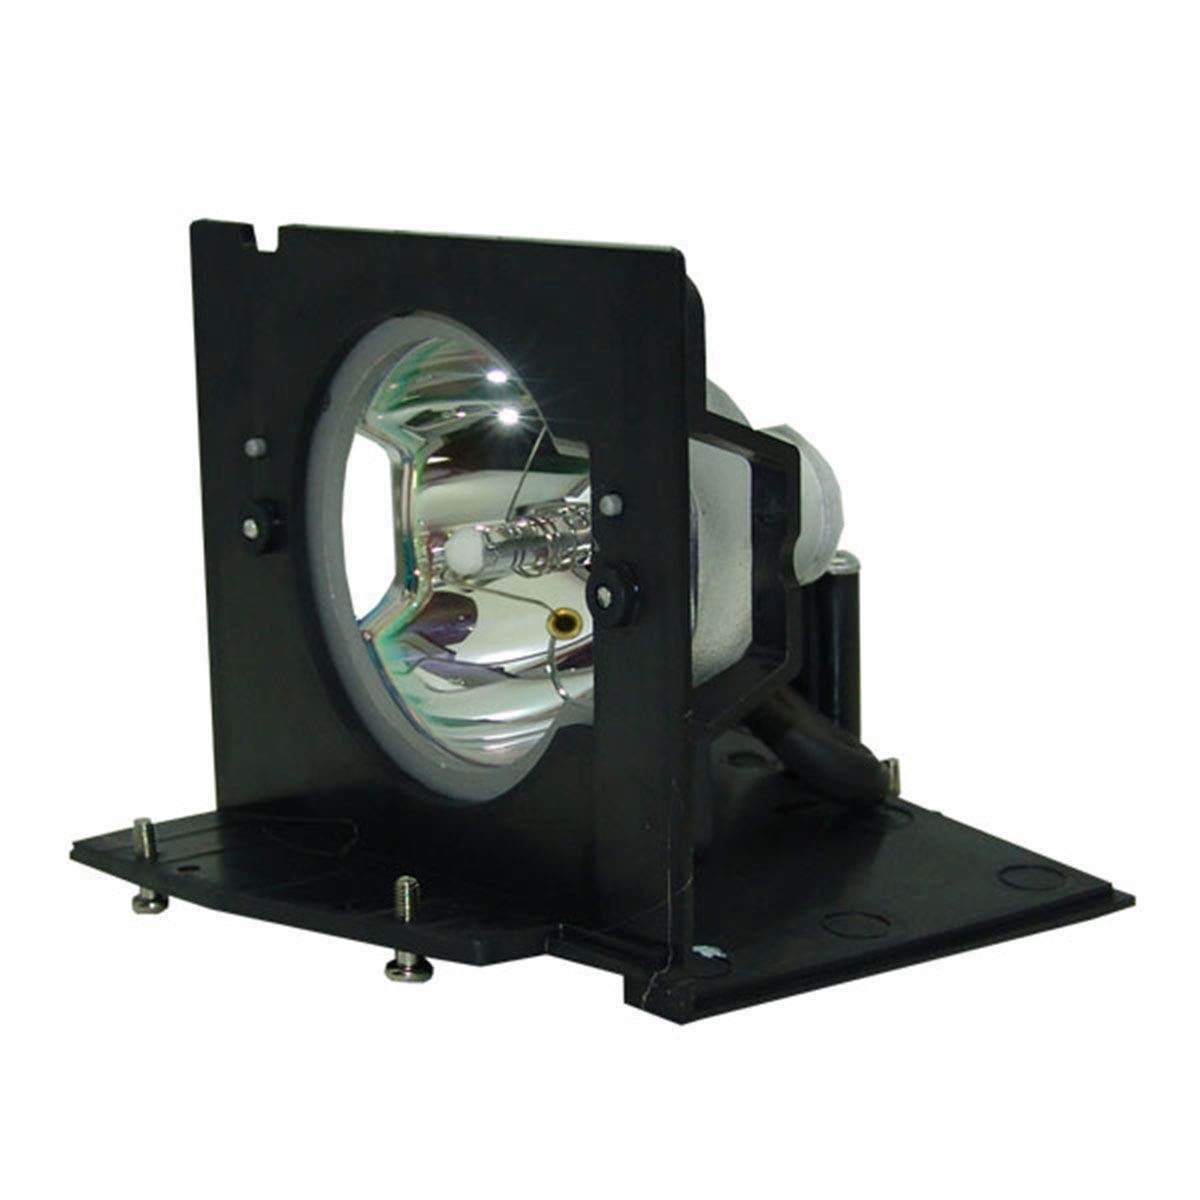 IET Lamps for Ask C440 Projector Lamp Replacement Assembly with Genuine Original OEM Ushio NSH Bulb Inside